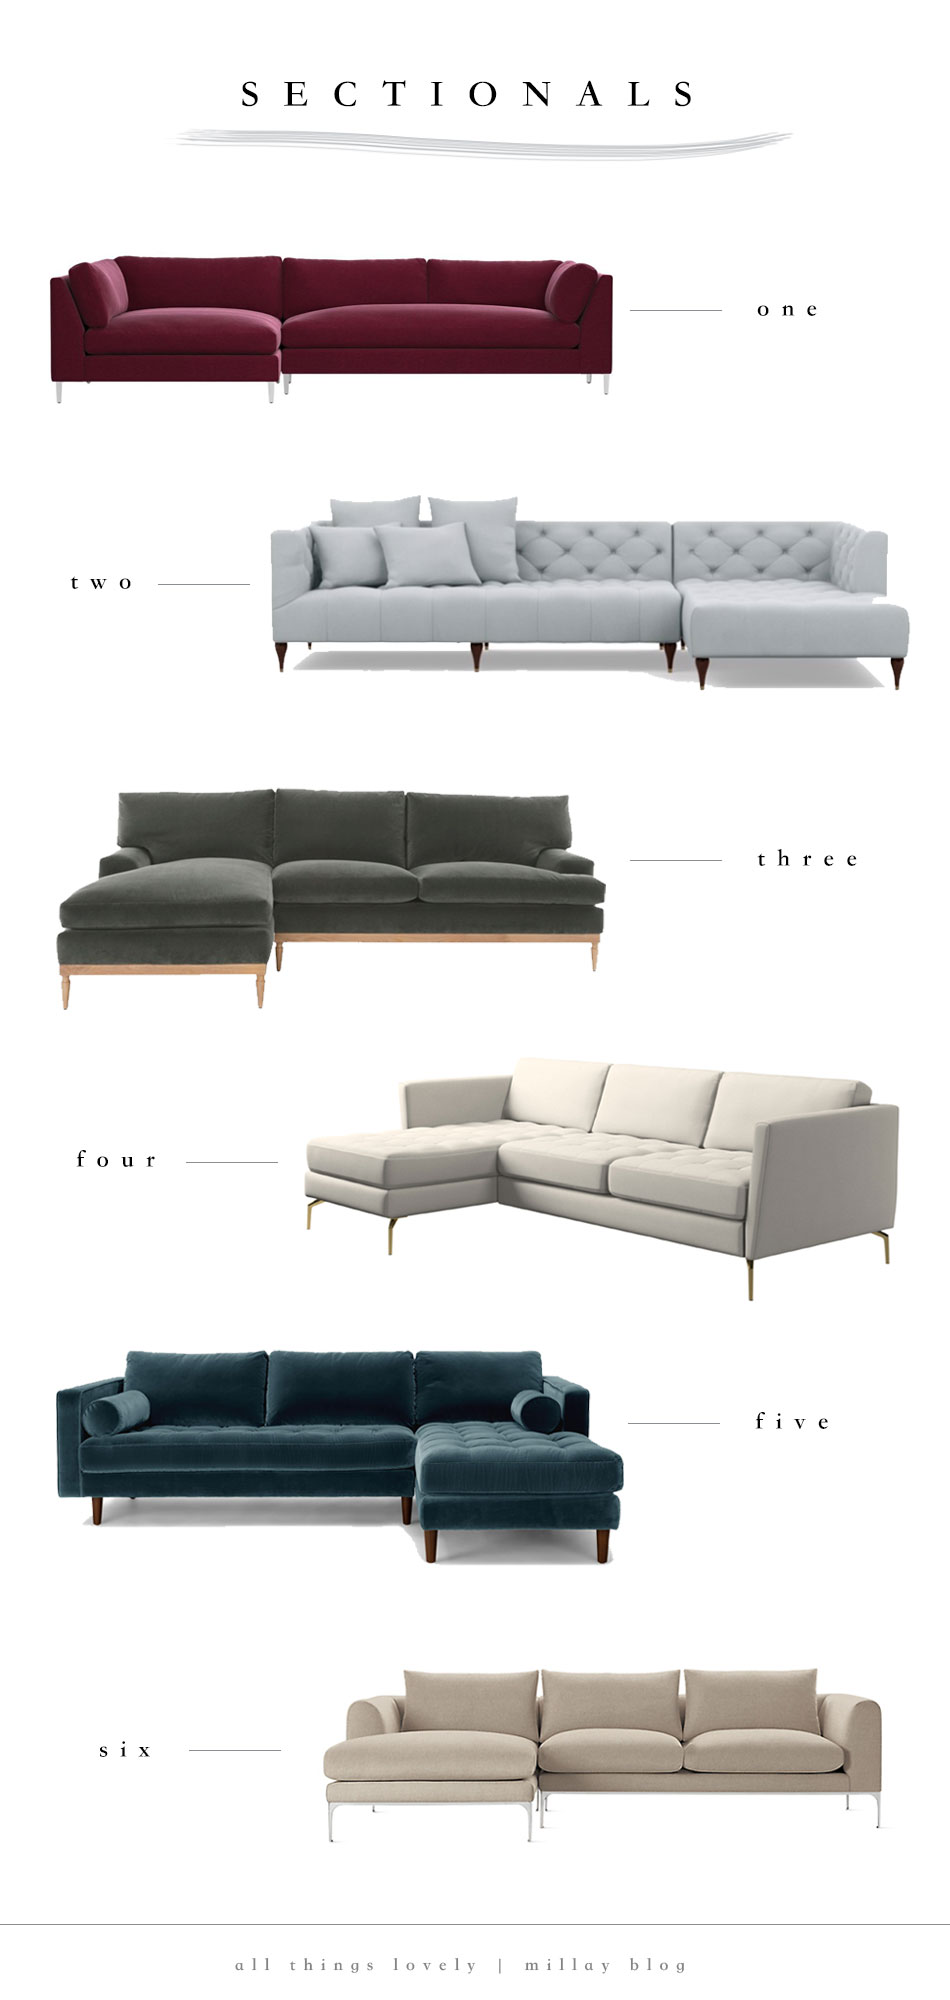 That Last Aspect Has Me Split On Whether I Want A Chaise Style Sectional Or  Sofa And Chair Combou2026so Iu0027m Currently Considering Both.